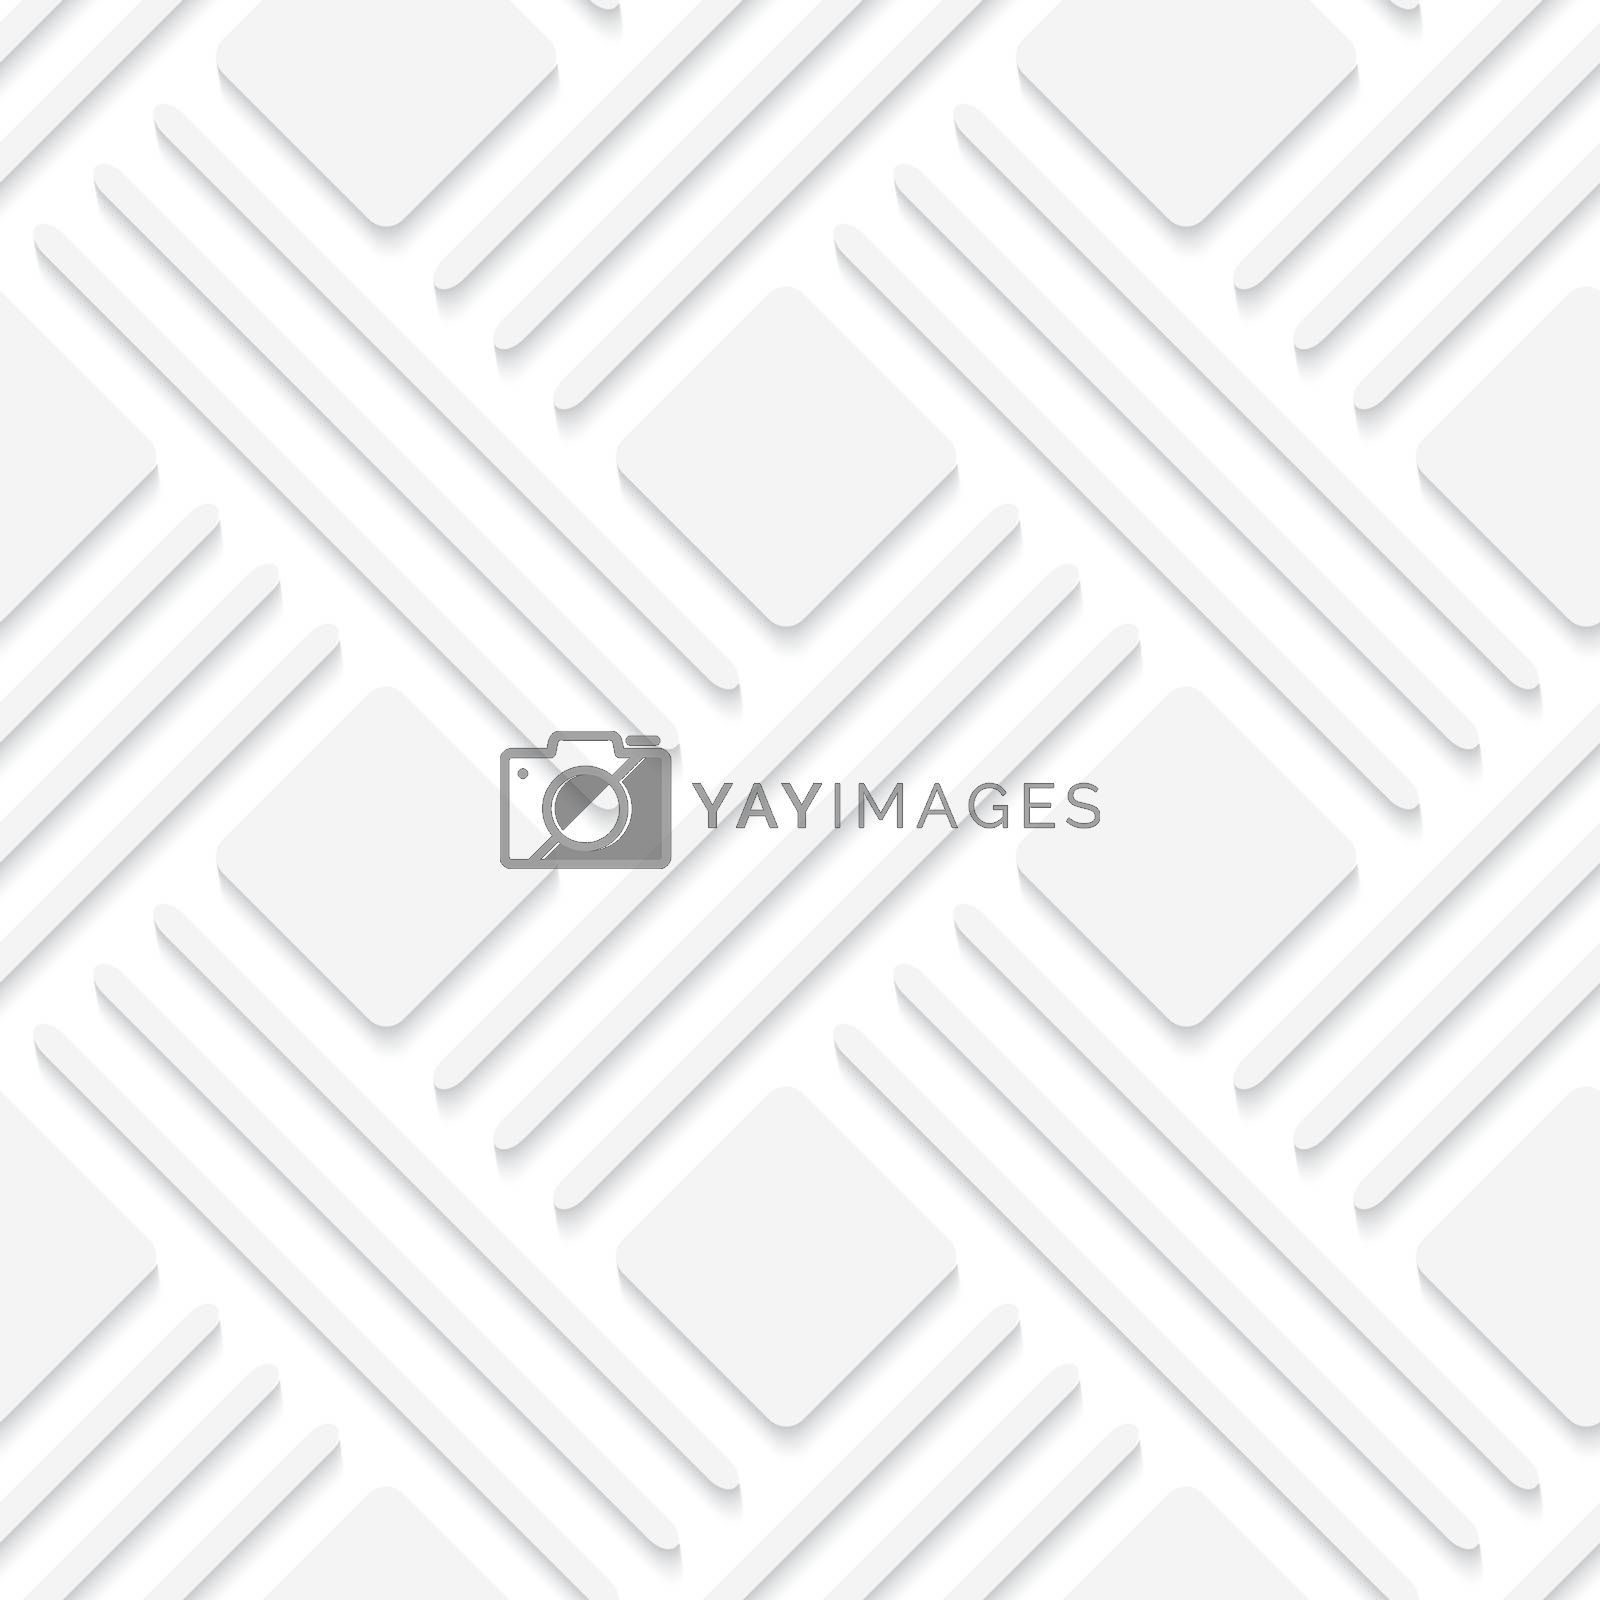 Royalty free image of White lines and squares by Zebra-Finch